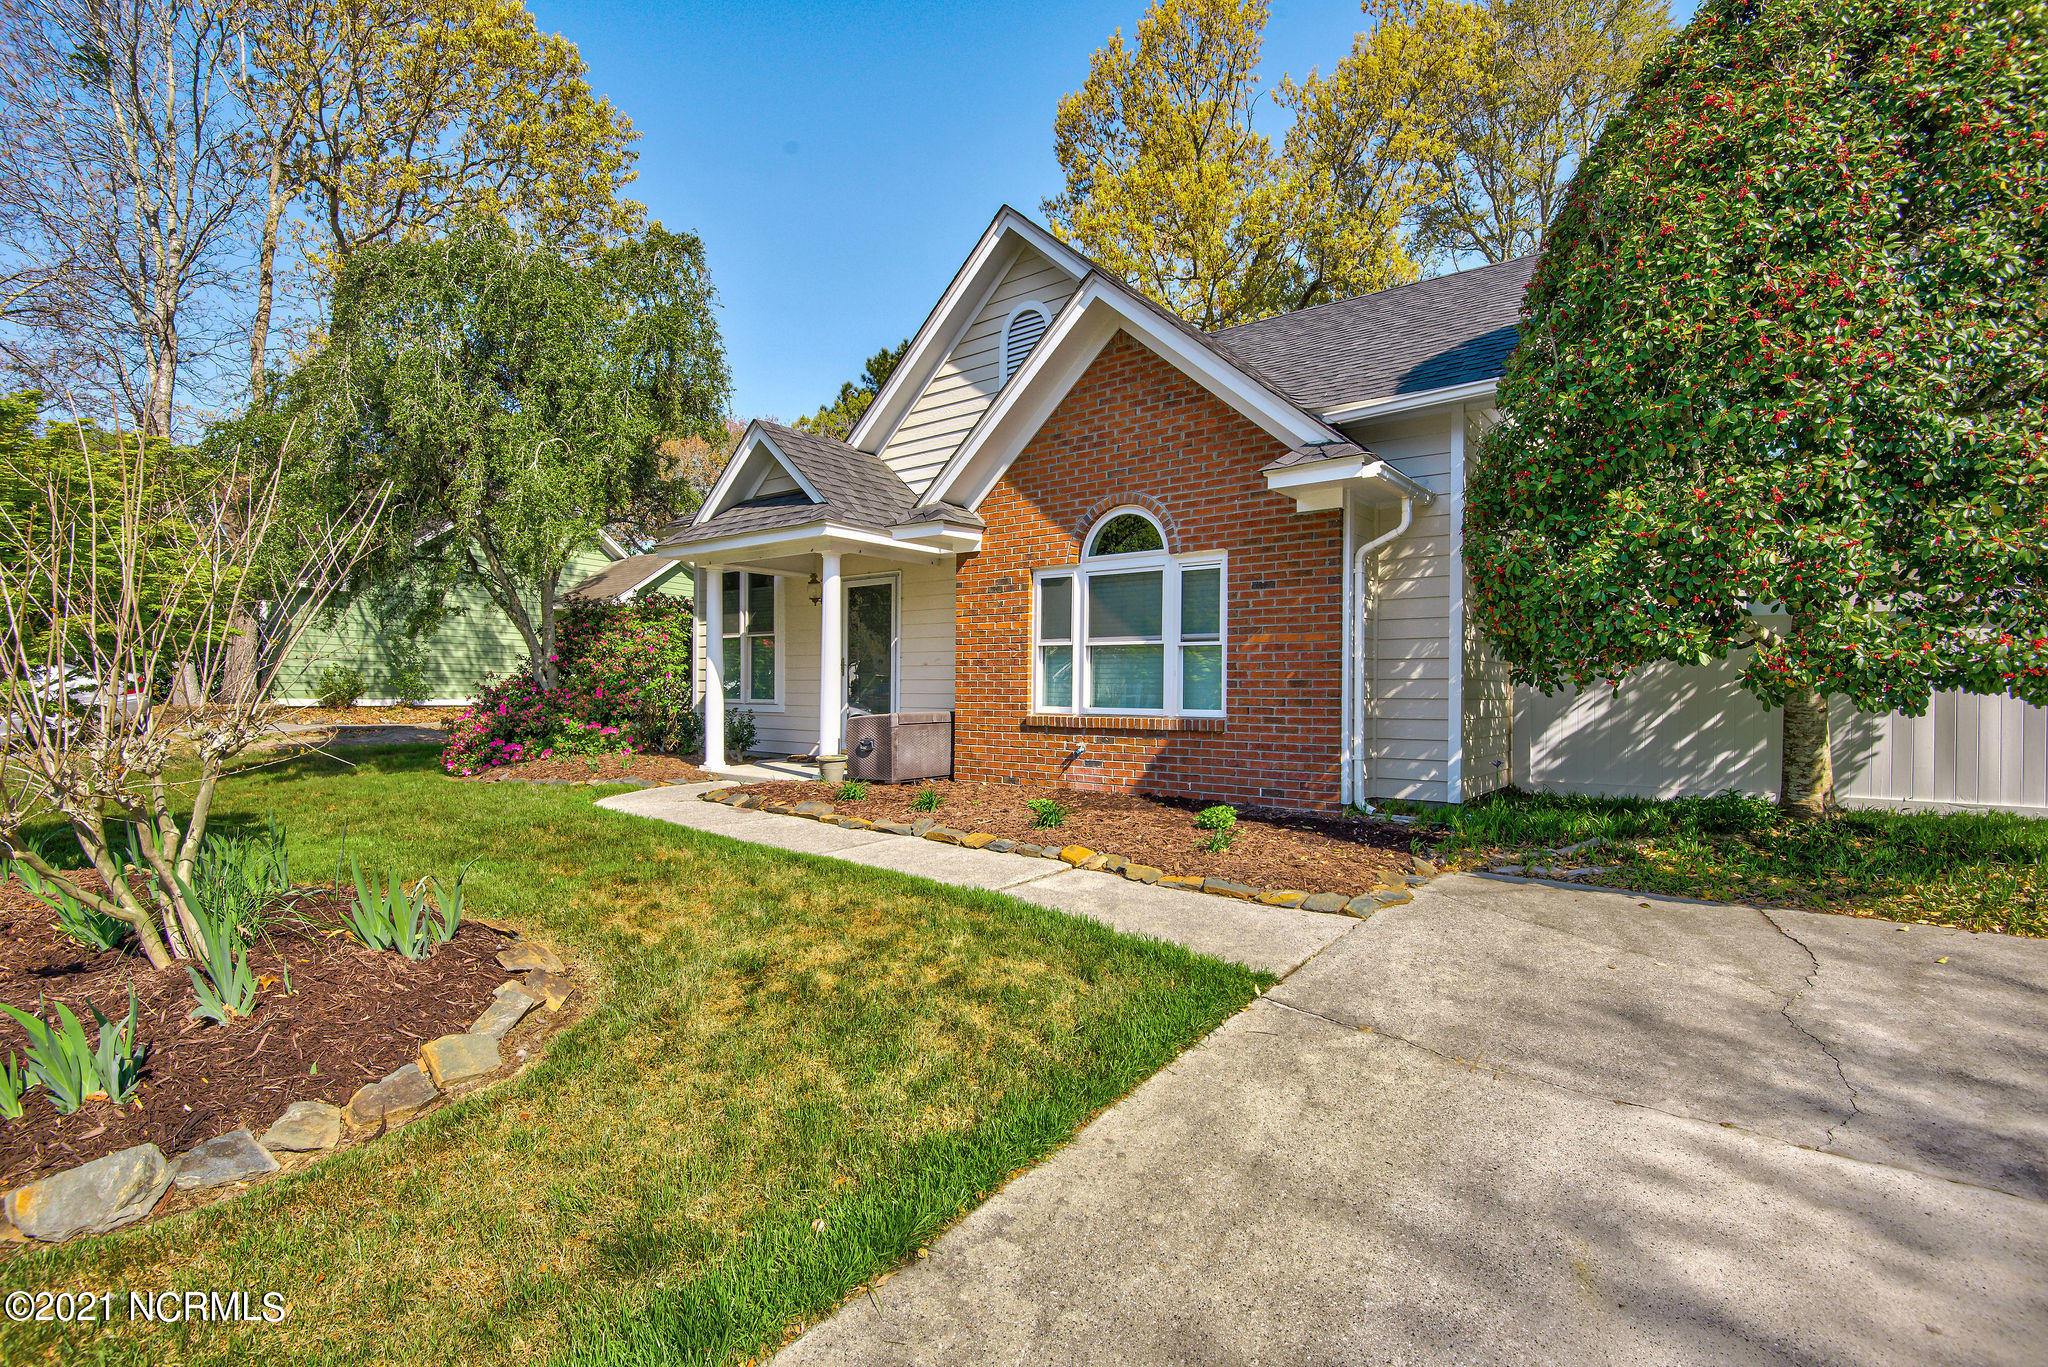 1411 Faulkenberry Road, Wilmington, North Carolina 28409, 3 Bedrooms Bedrooms, 7 Rooms Rooms,2 BathroomsBathrooms,Single family residence,For sale,Faulkenberry,100285038